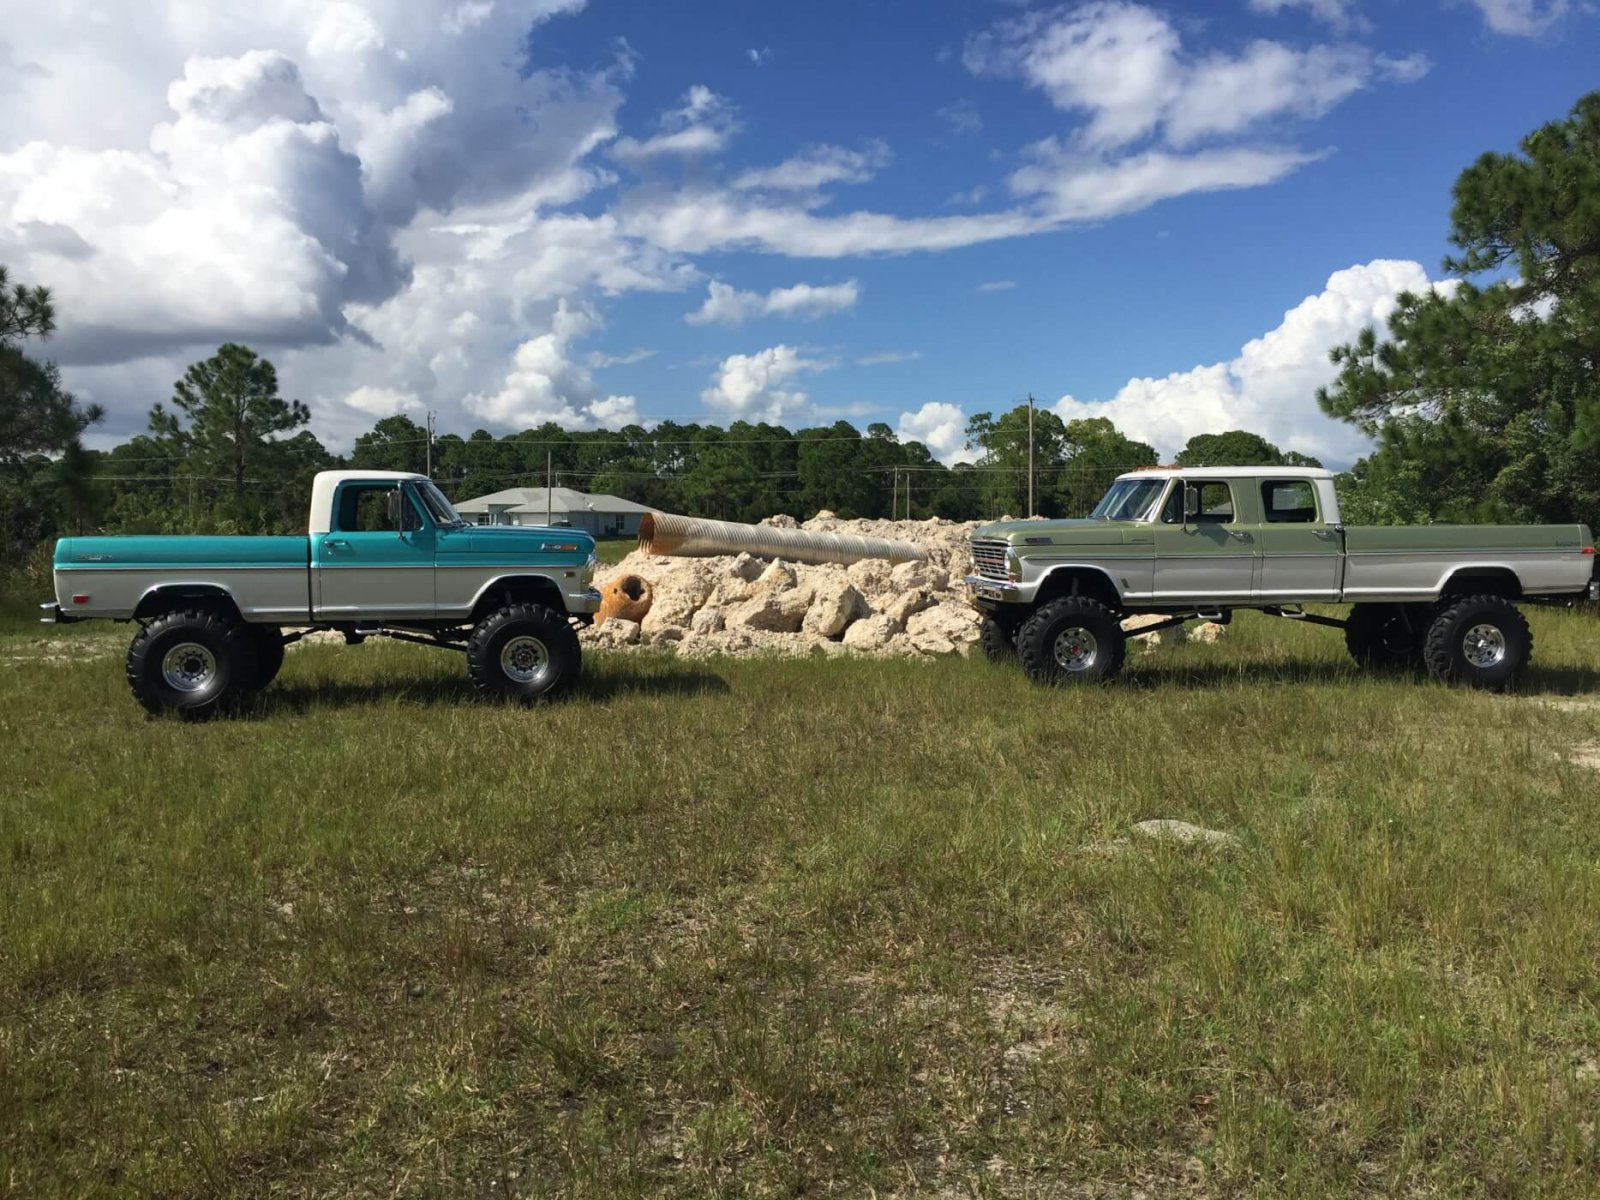 1967 Ford F250 Story About Truck Owner Justin L 2.jpeg